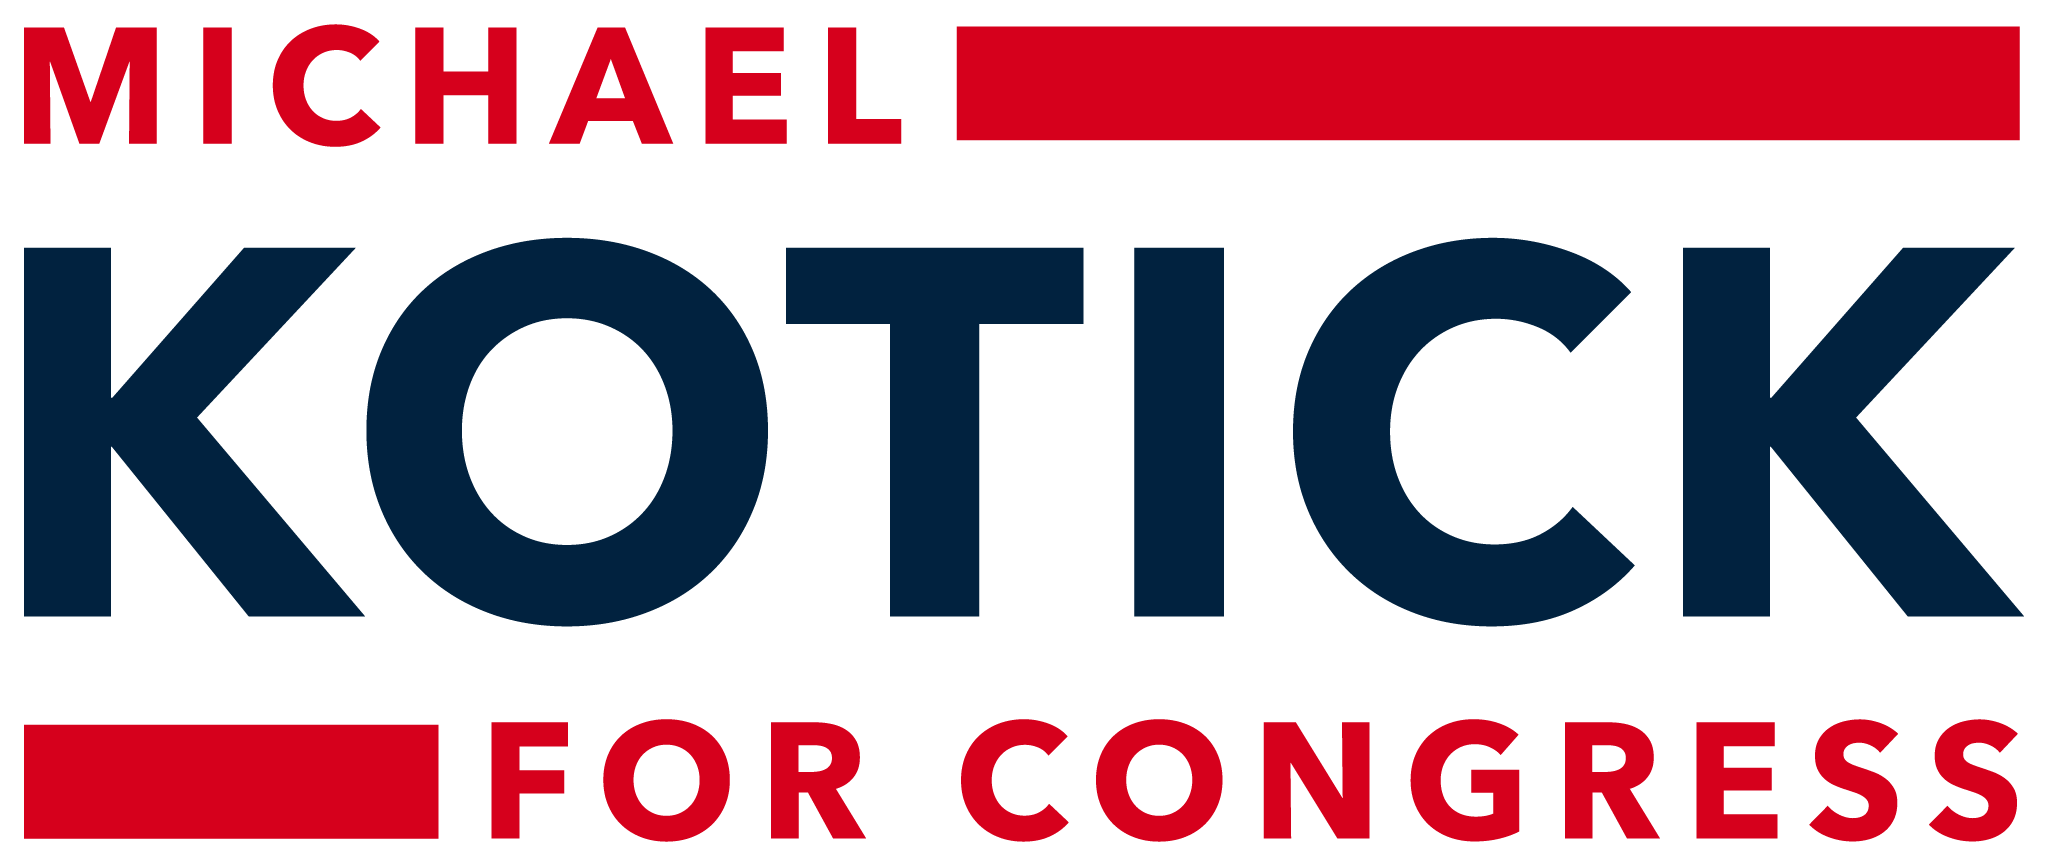 Michael Kotick for US Congress (CA-48)